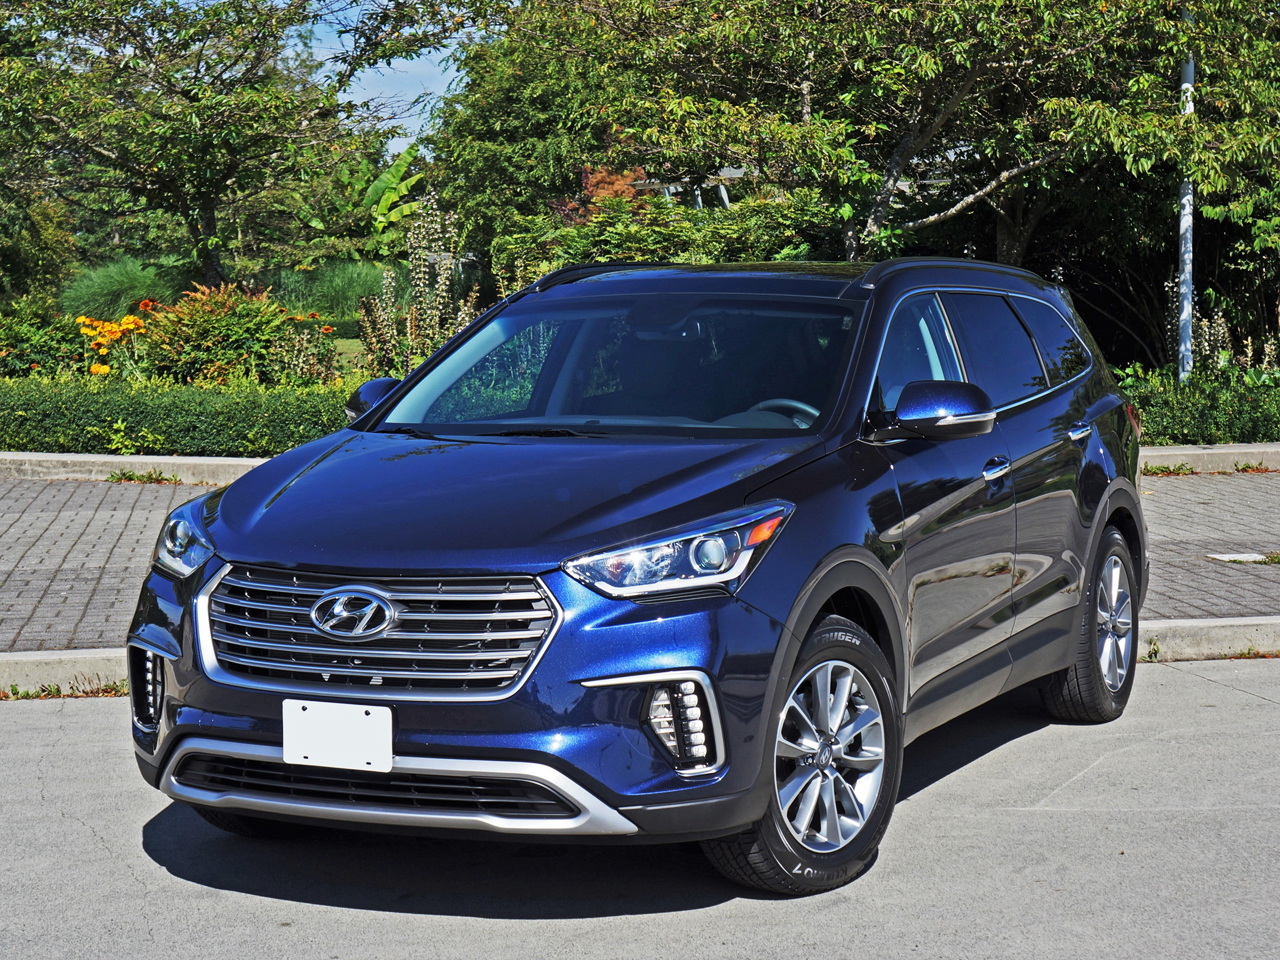 2017 Hyundai Santa Fe Towing Capacity >> 2017 Hyundai Santa Fe Xl Awd Road Test Review Carcostcanada